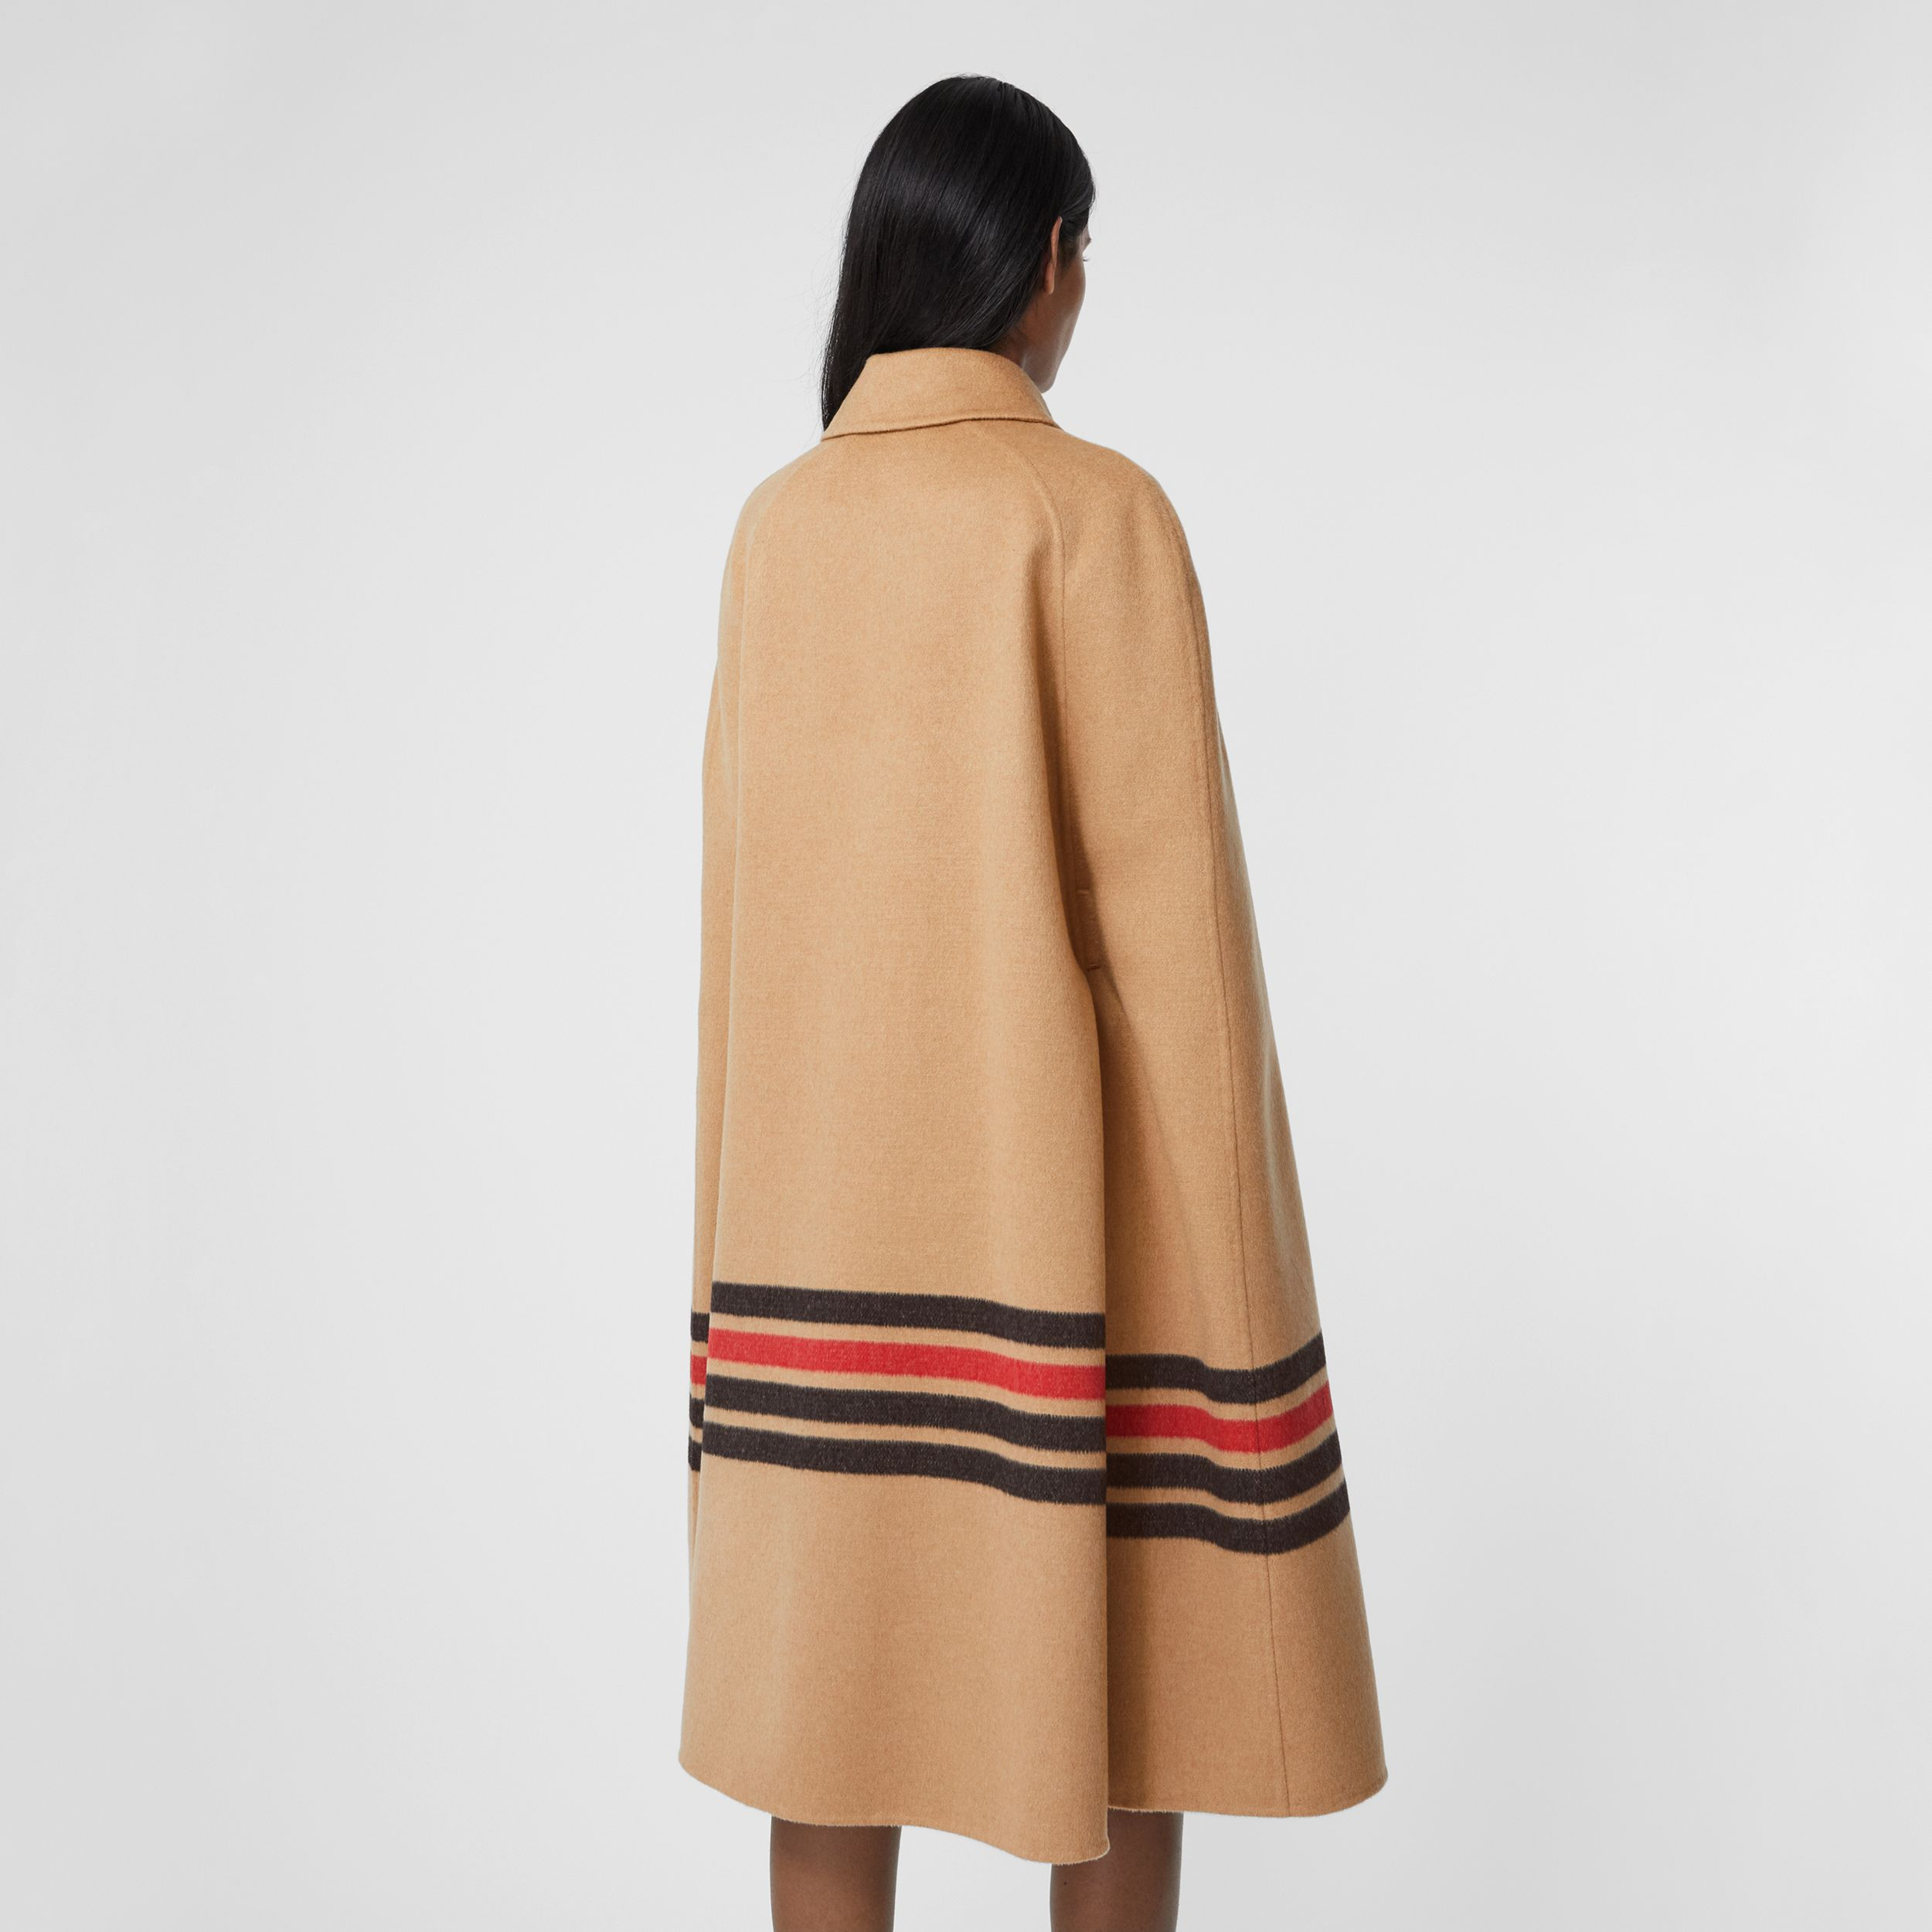 Stripe Detail Double-faced Cashmere Cape in Light Camel - Women | Burberry - 3